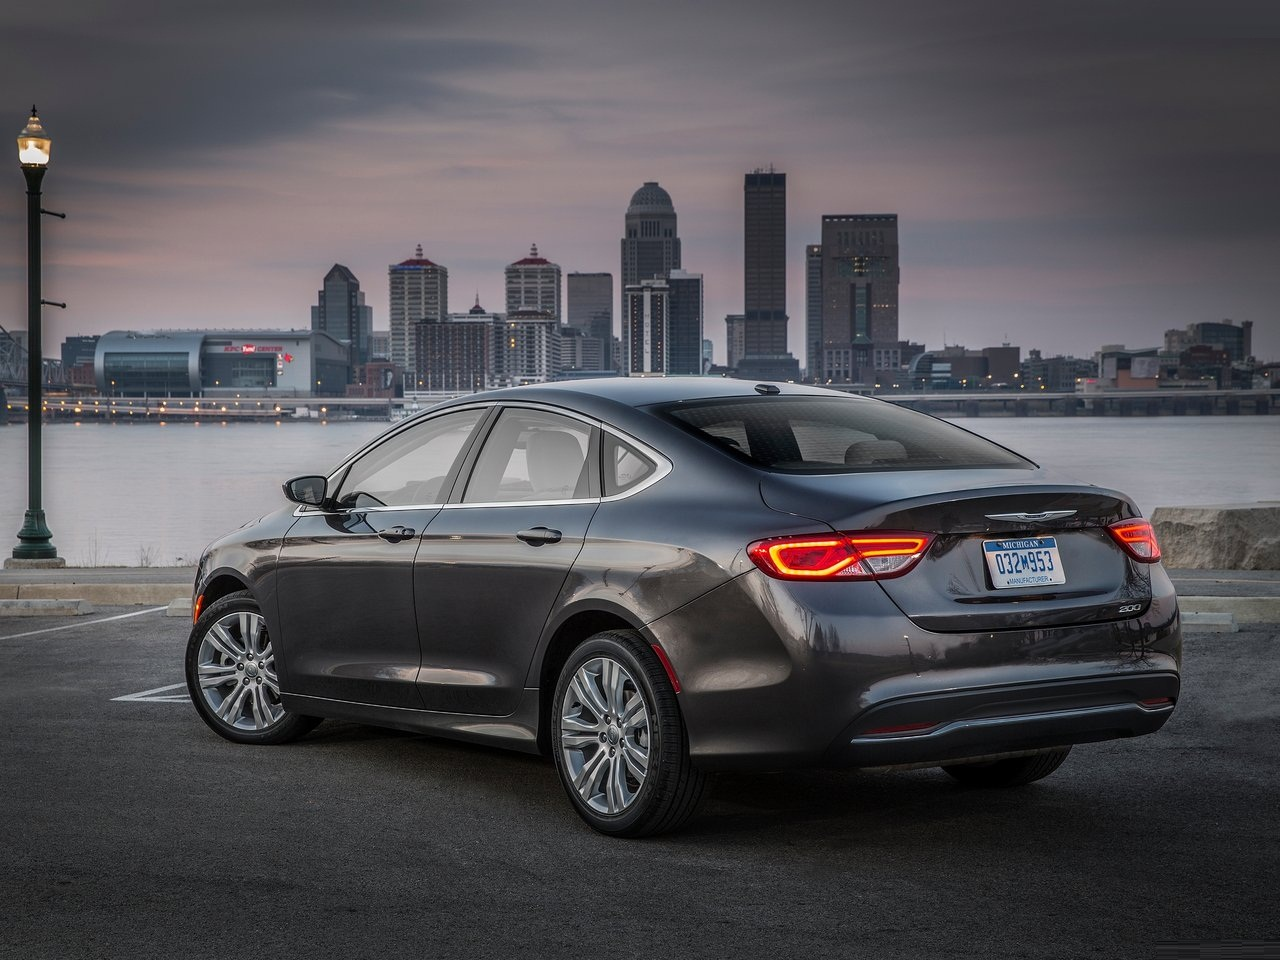 2015 Chrysler 200   Wallpapers Pics Pictures Images Photos 1280x960